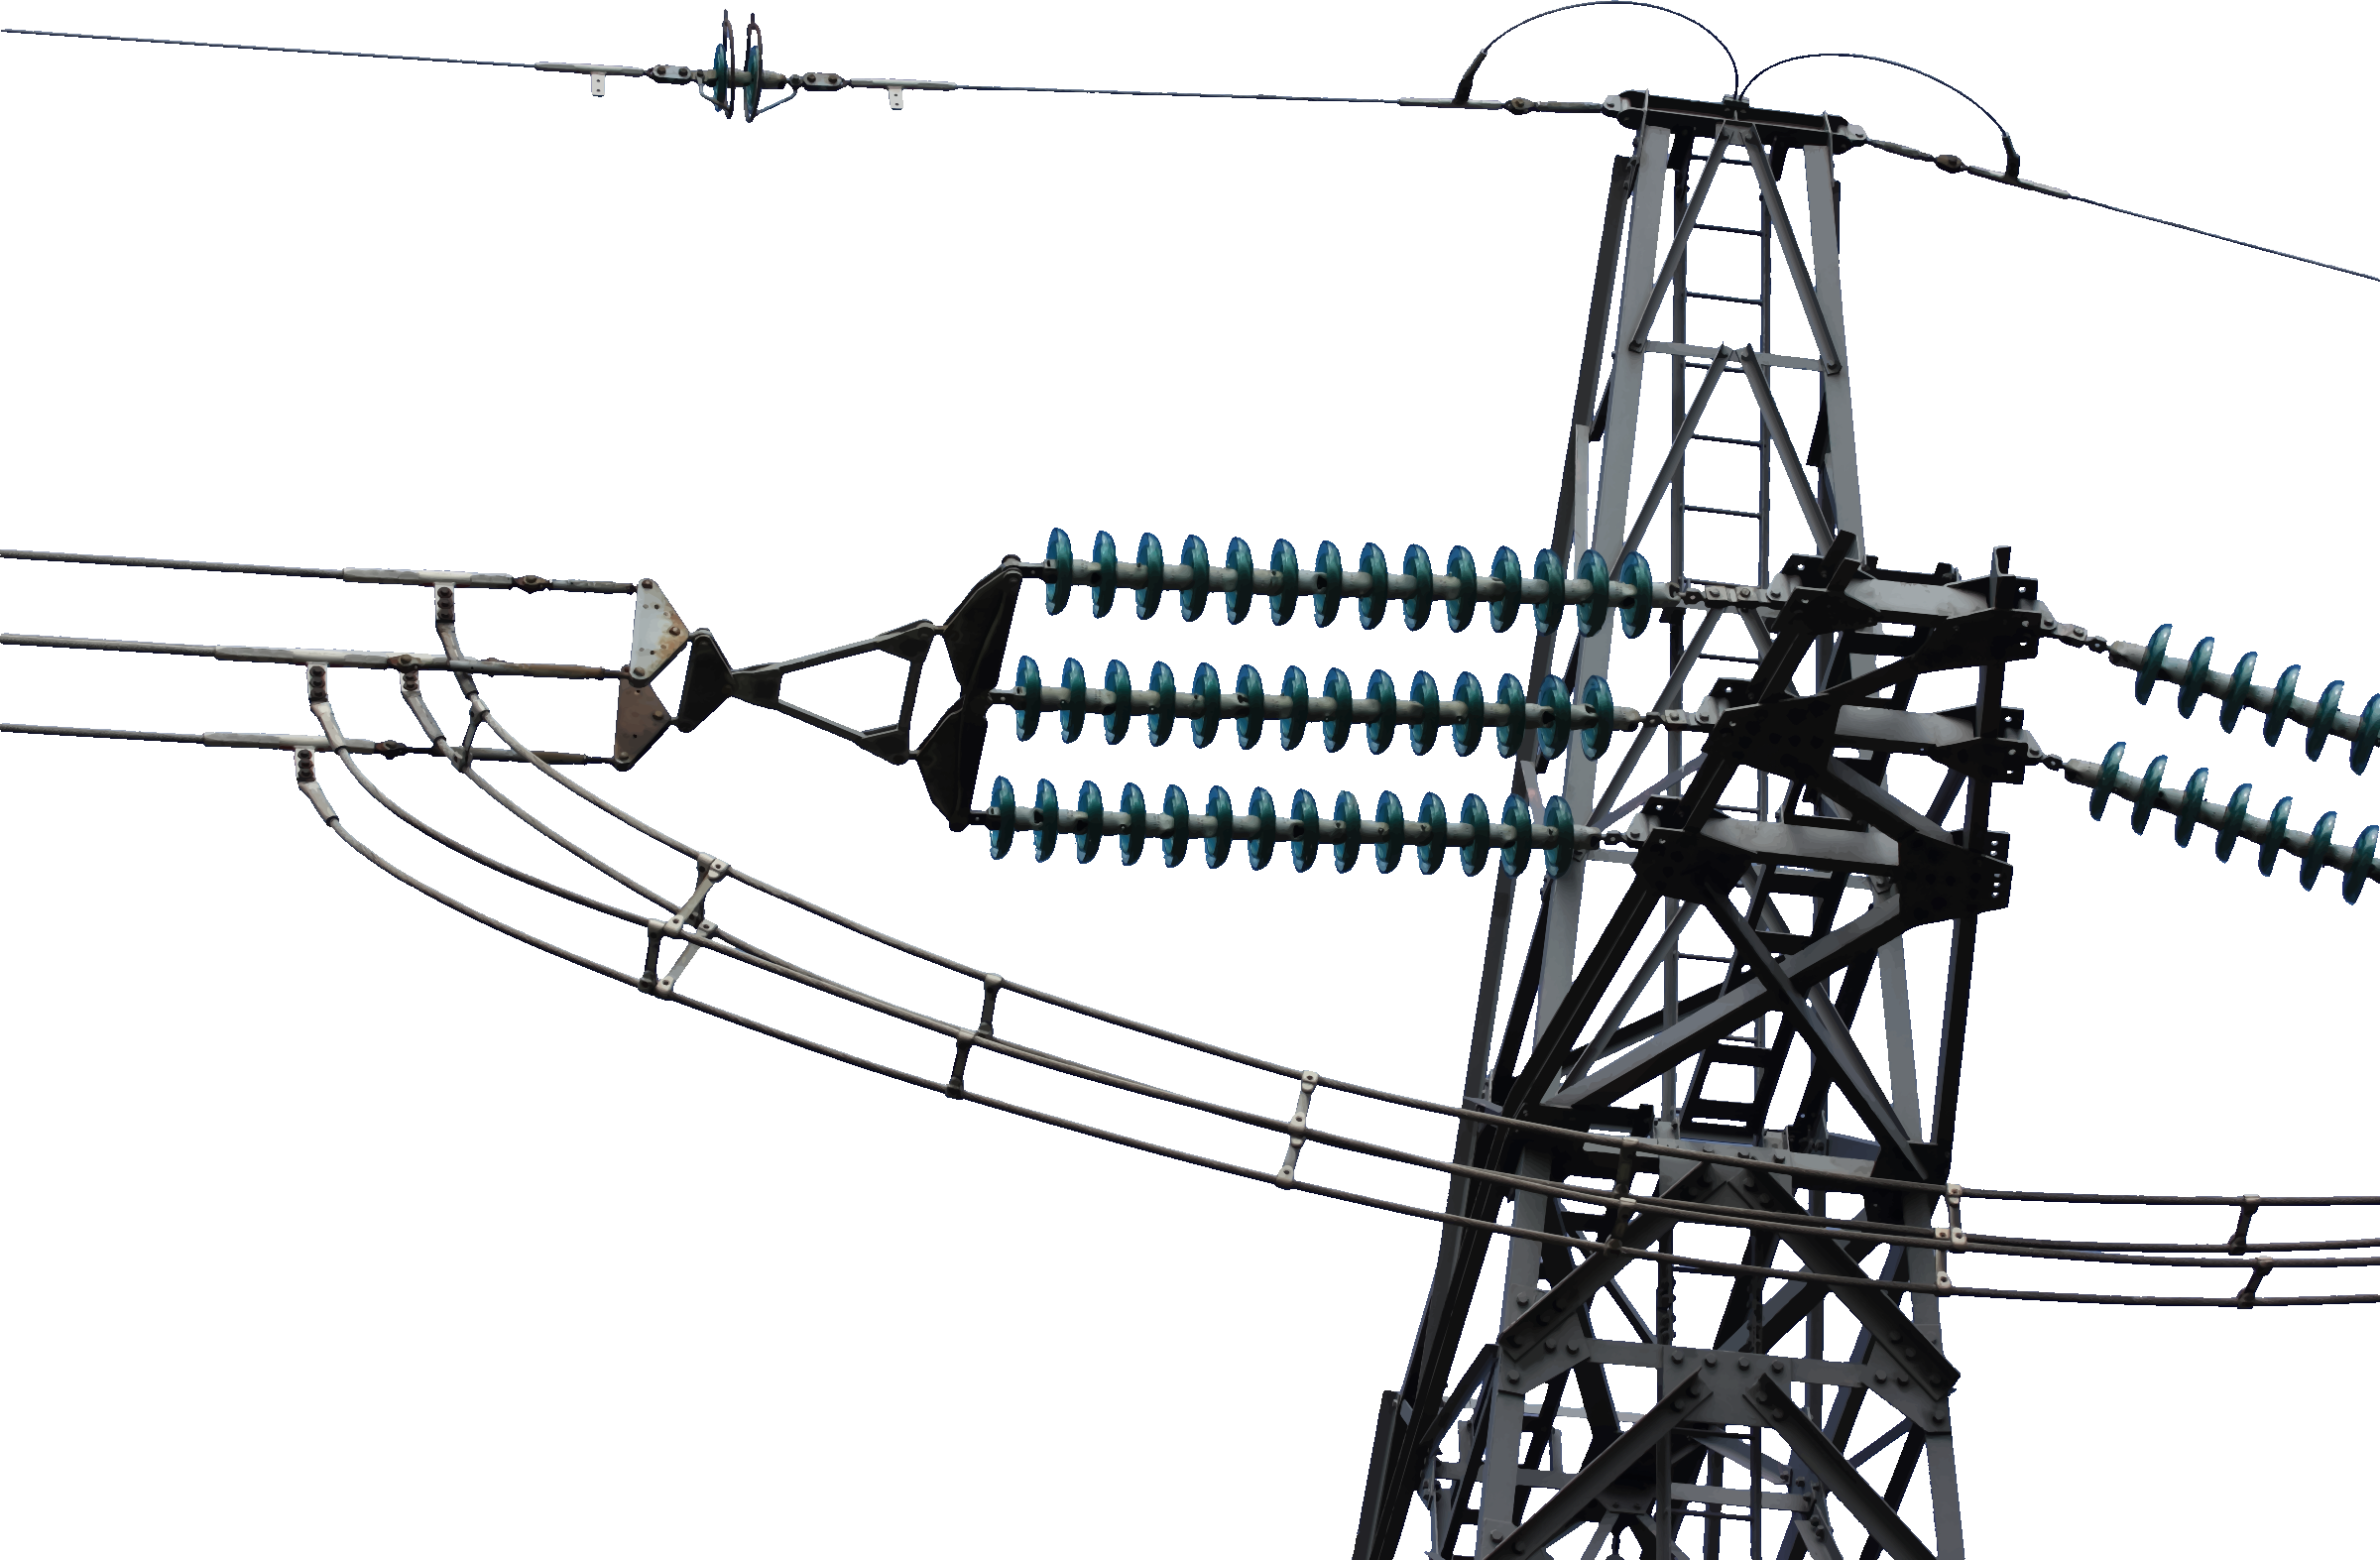 Tower clipart transmission line tower. Powerlines big image png